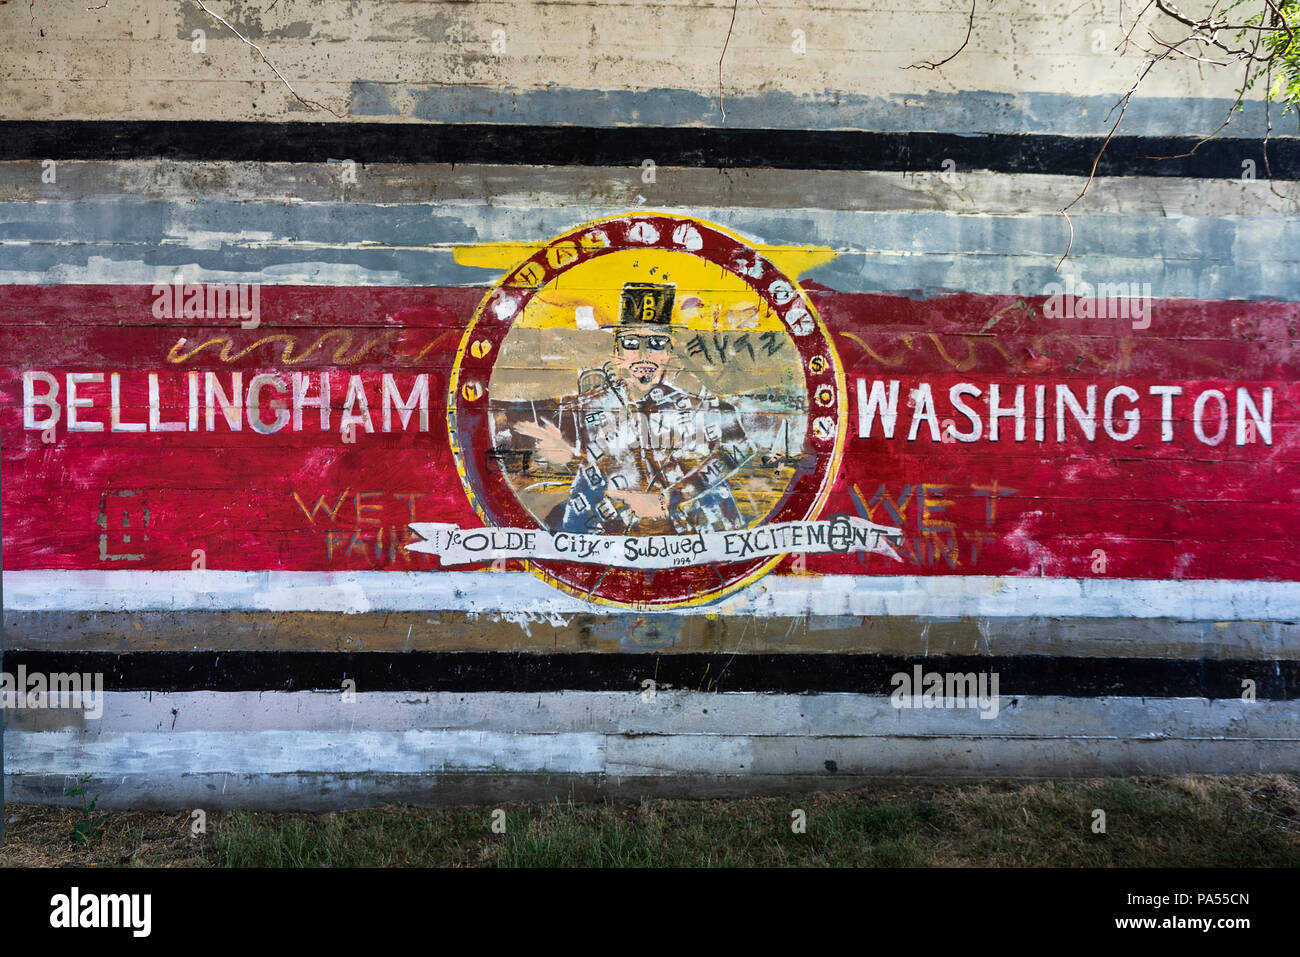 Wall Mural, Bellingham, Washington State, USA Stock Photo